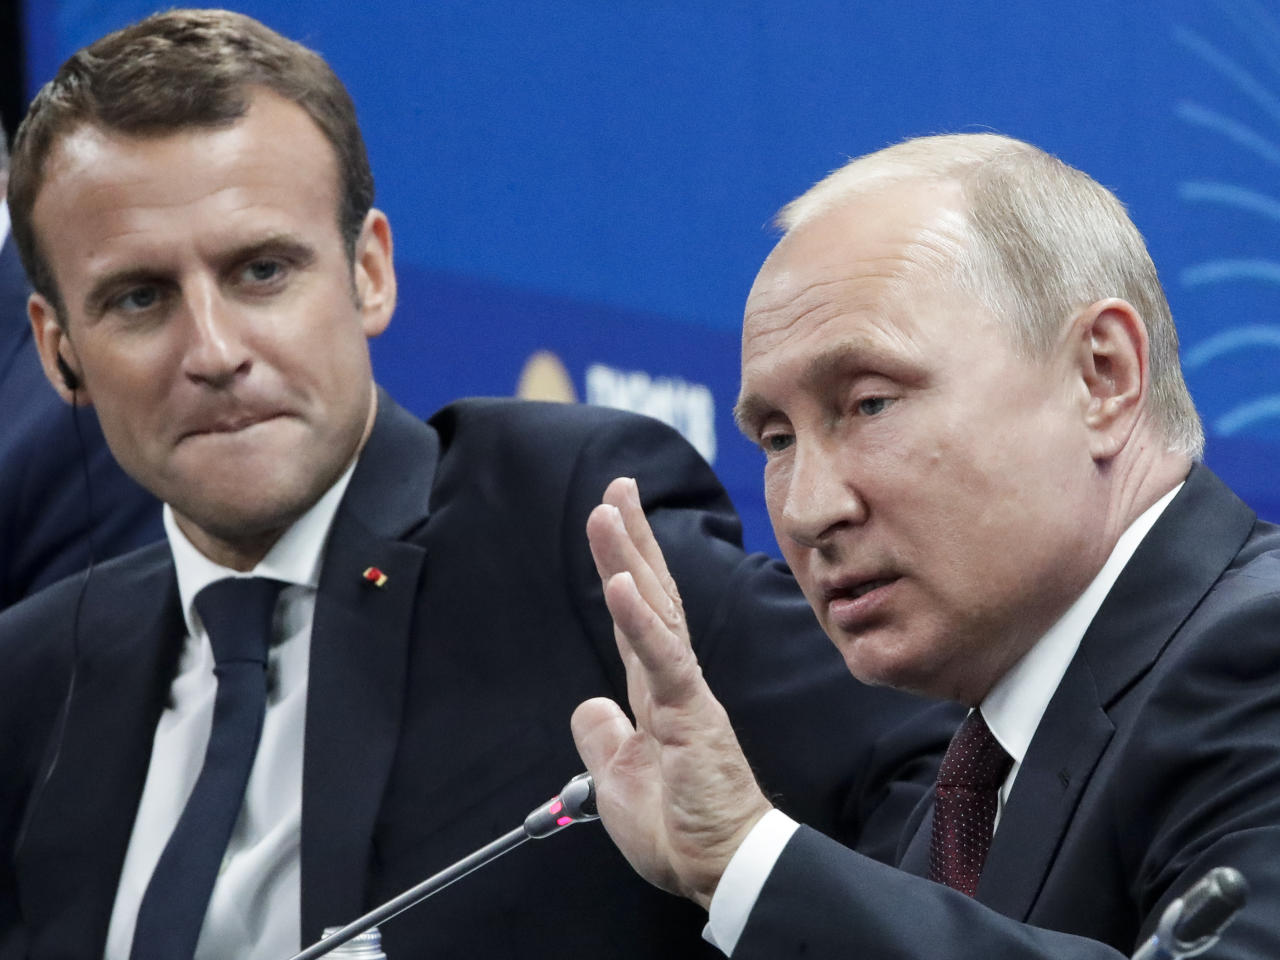 Russian President Vladimir Putin, right, gestures while speaking as French President Emmanuel Macron looks at him at the St. Petersburg International Economic Forum in St. Petersburg, Russia, Friday, May 25, 2018. (AP Photo/Dmitri Lovetsky, Pool)